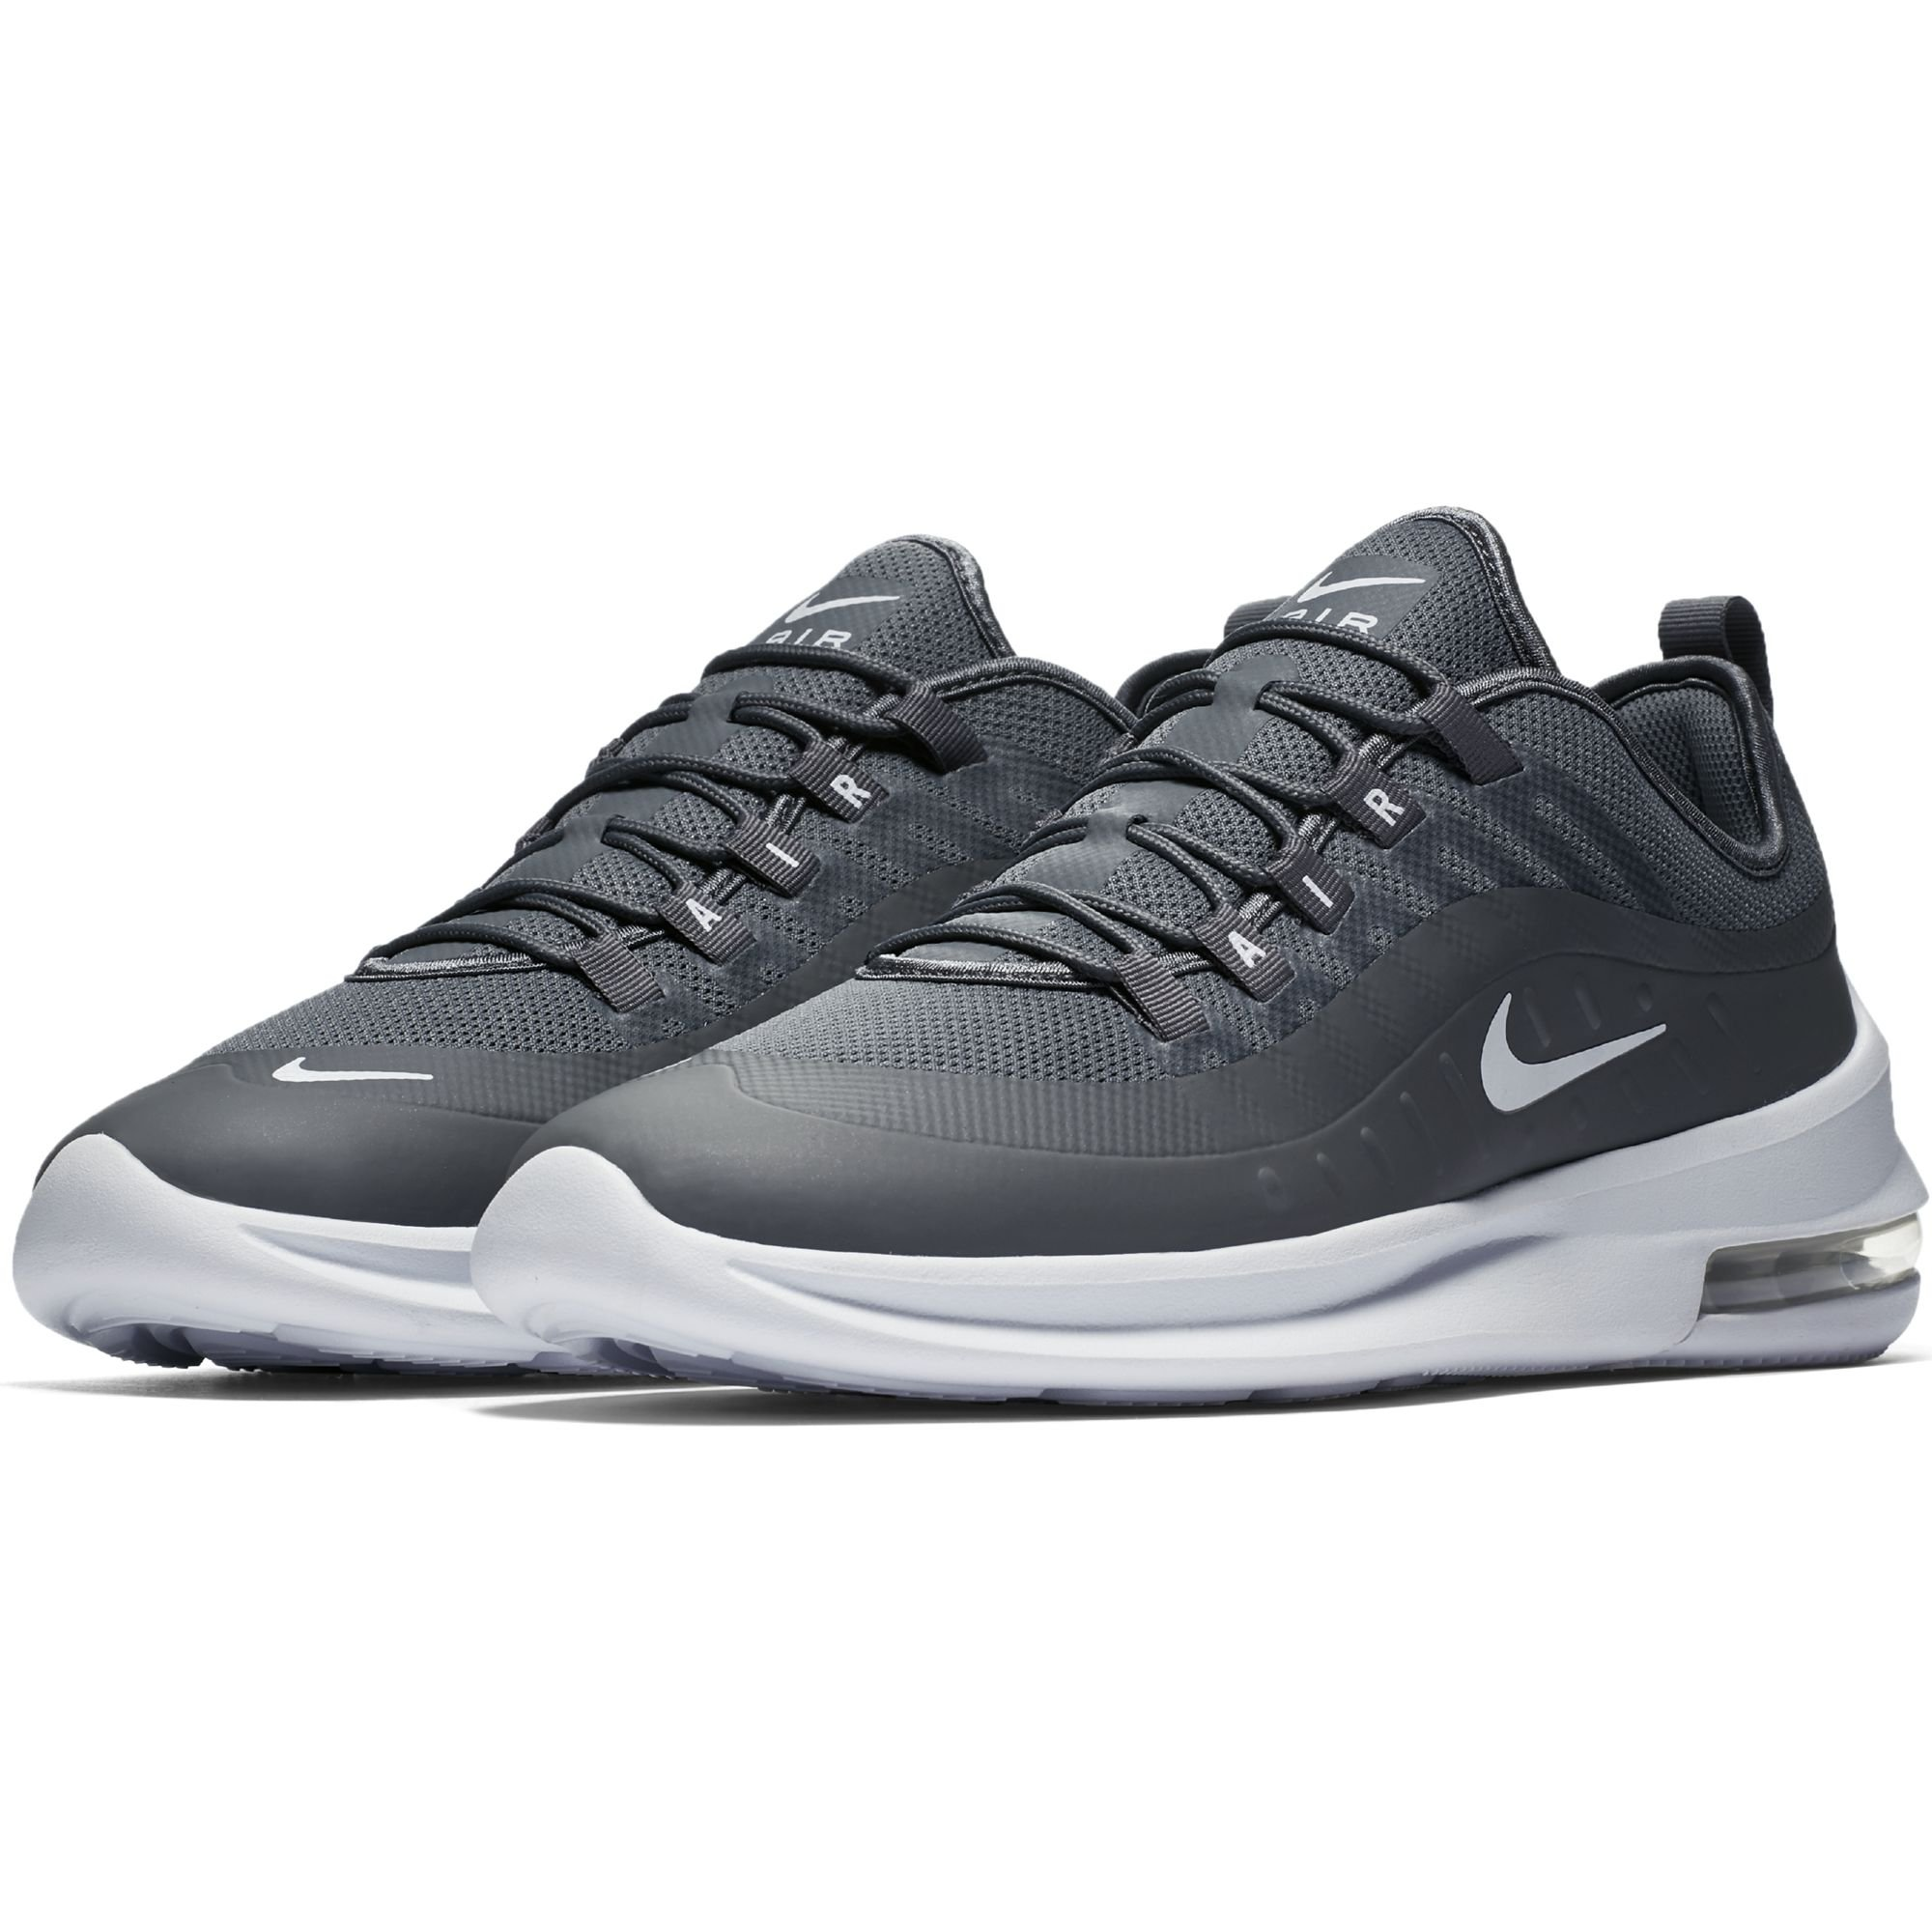 new style c2b97 d0665 Galleon - Nike Men s Air Max Axis Running Shoe, Cool Grey White, 9